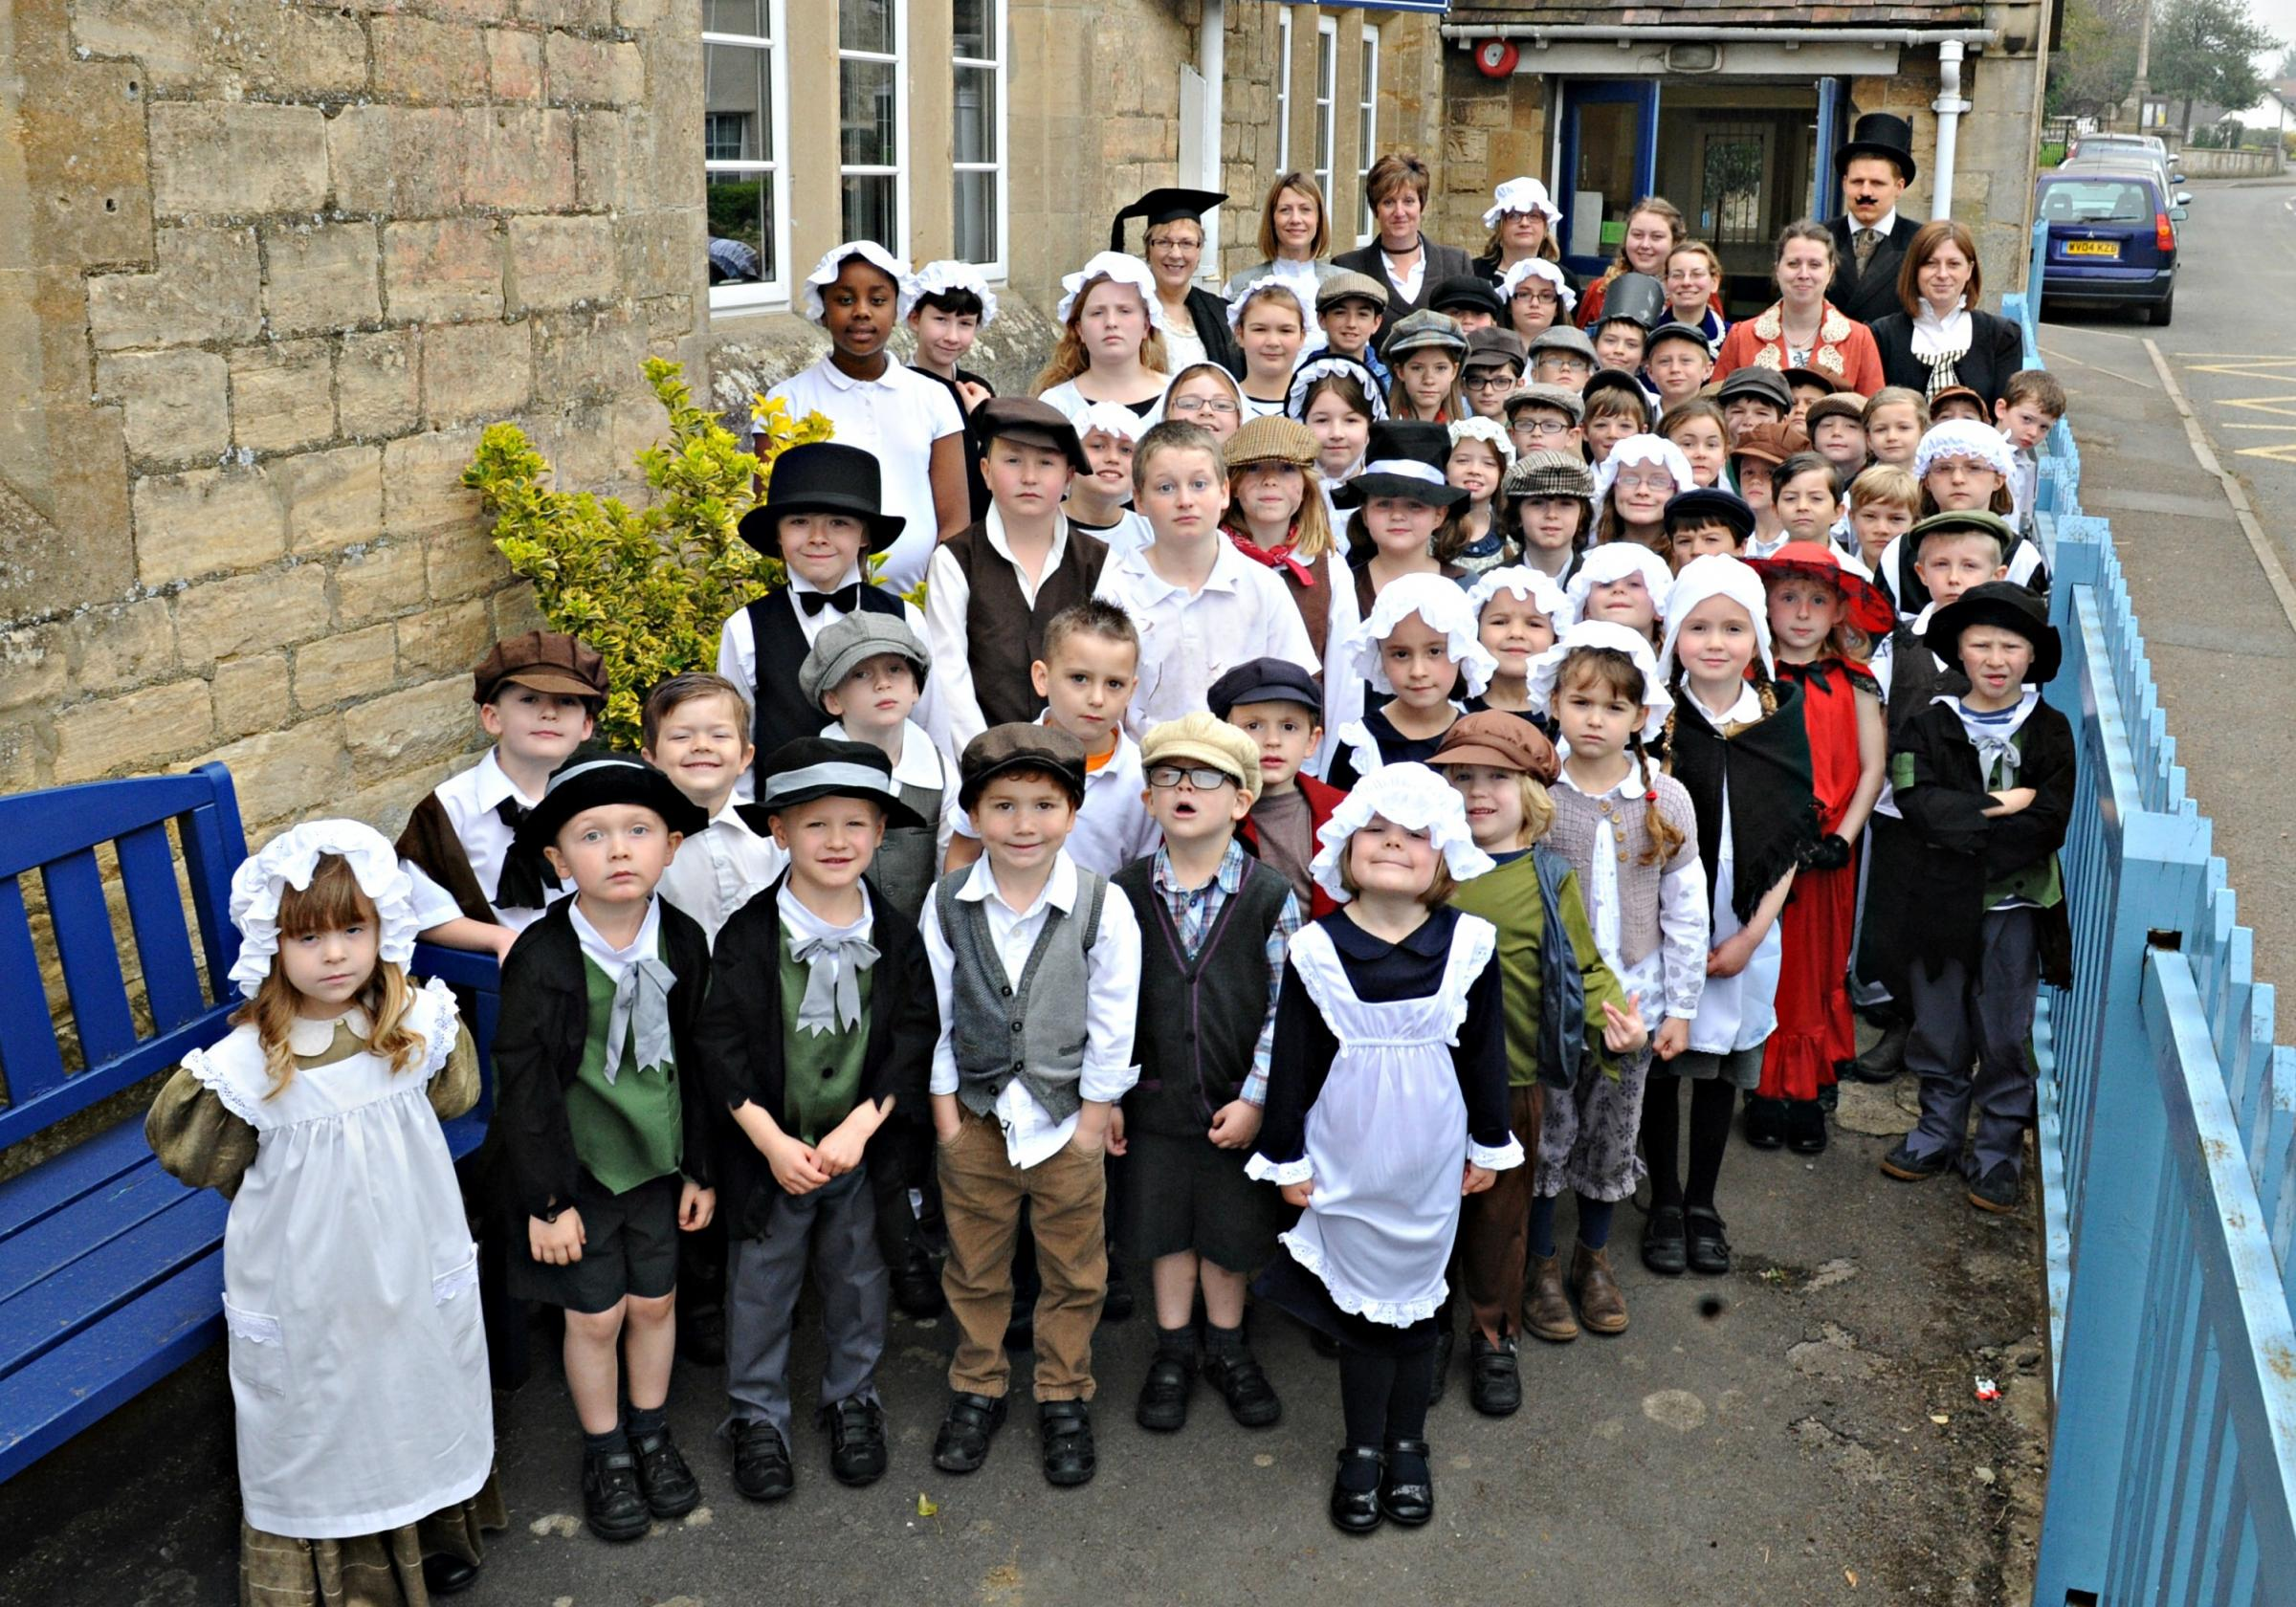 Coaley Primary School dresses up for Victorian day